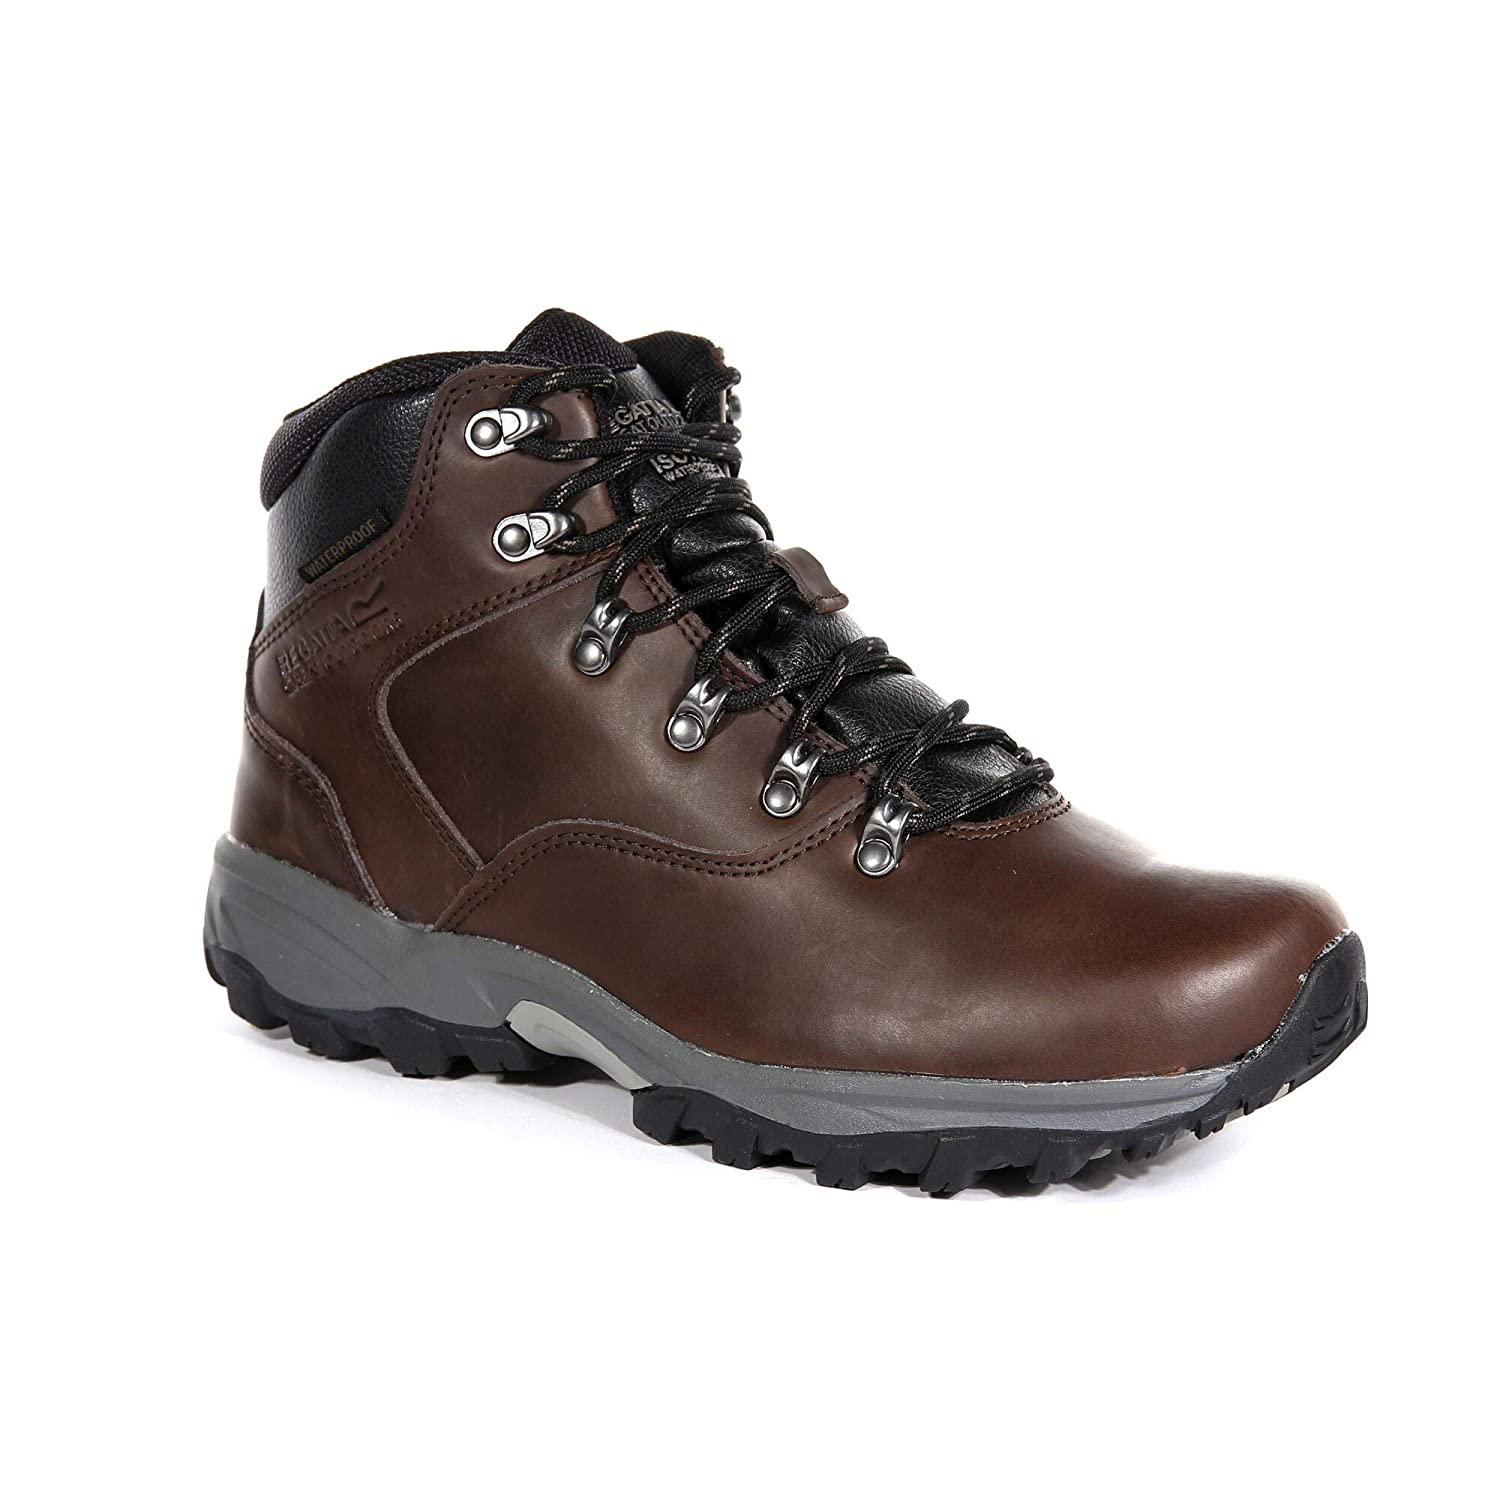 411bac75030 Regatta Bainsford, Men's High Rise Hiking Boots